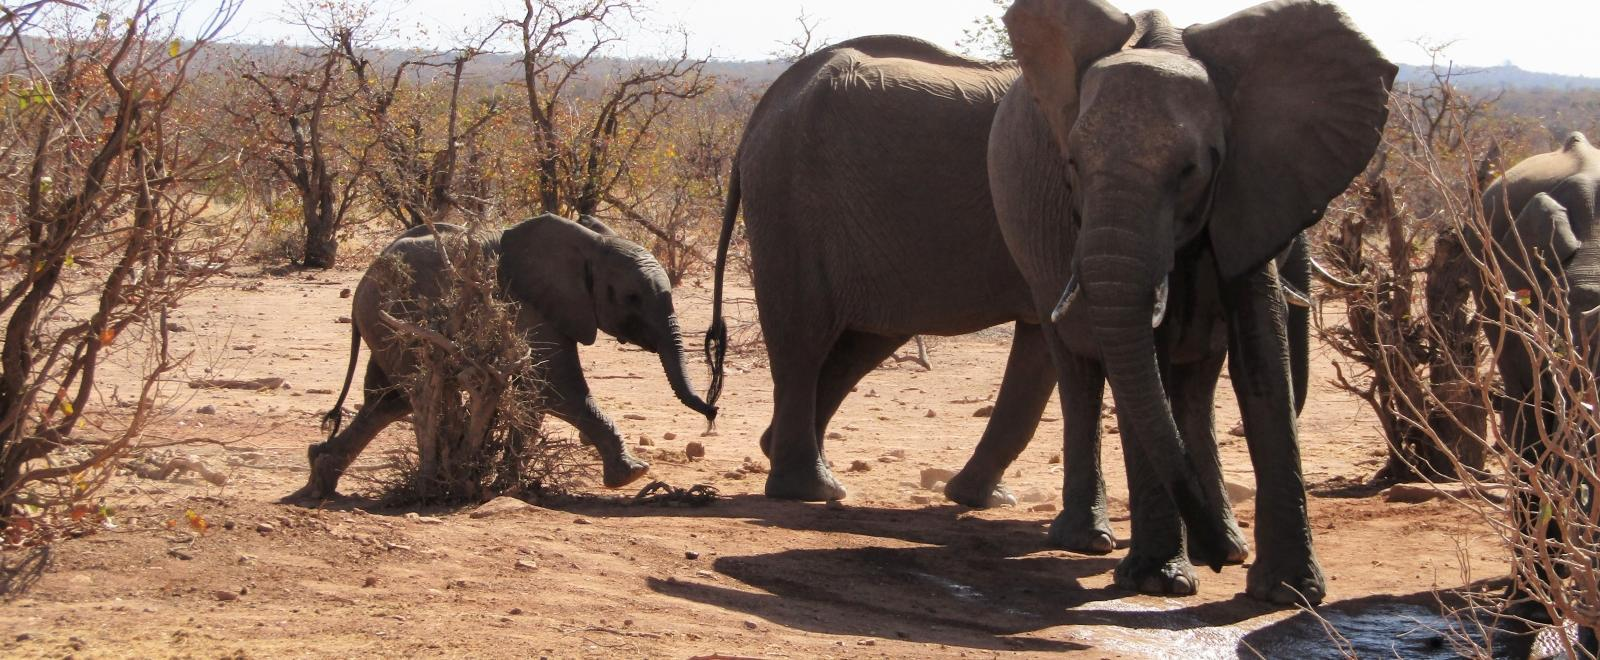 Projects Abroad volunteers observe wild elephants at a watering hole in Botswana during their ecotourism holiday.